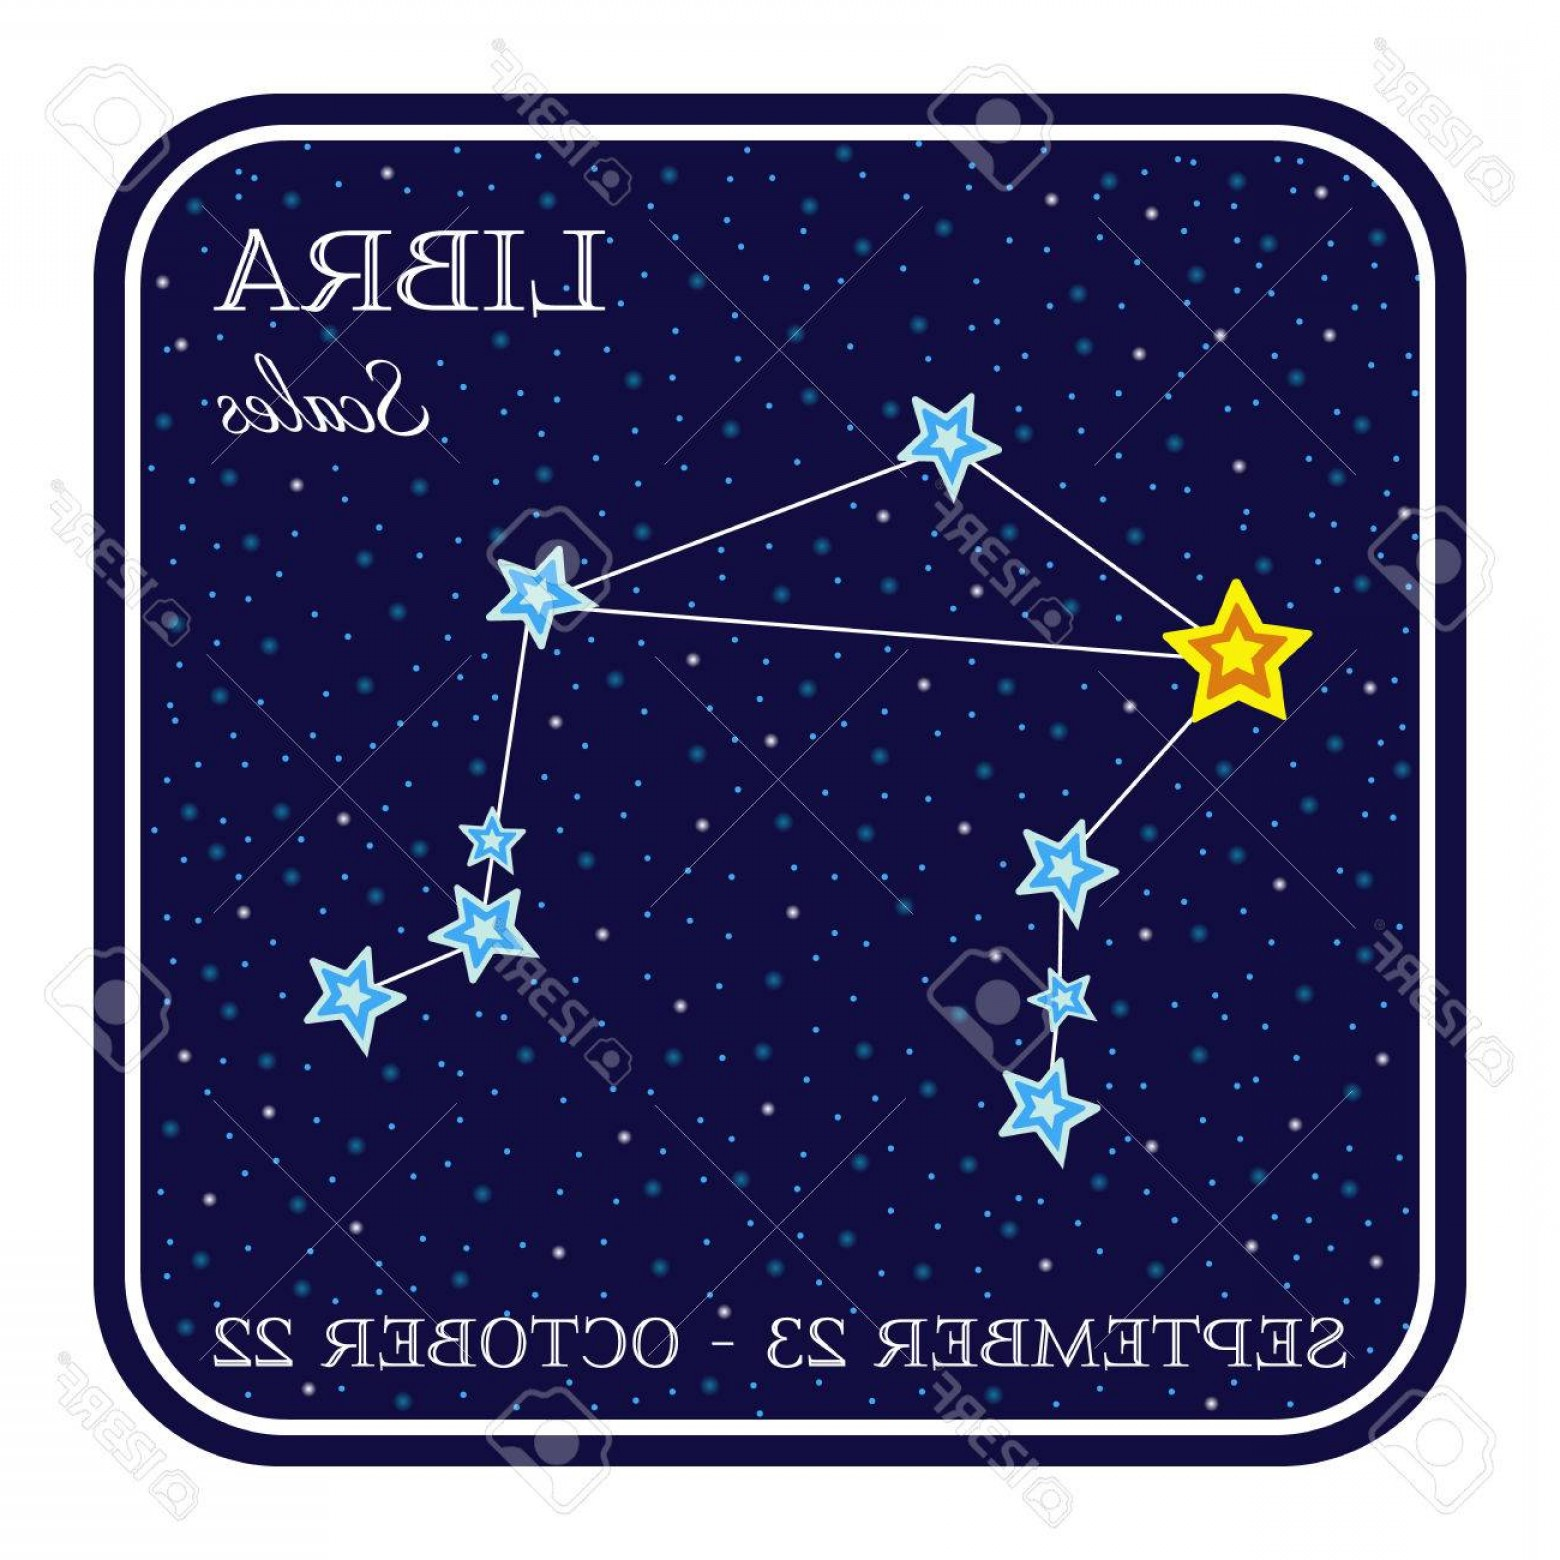 October Zodiac Constellation Vector: Photostock Vector Libra Zodiac Constellation In Square Frame Cute Cartoon Style Illustration Isolated On White Backgro